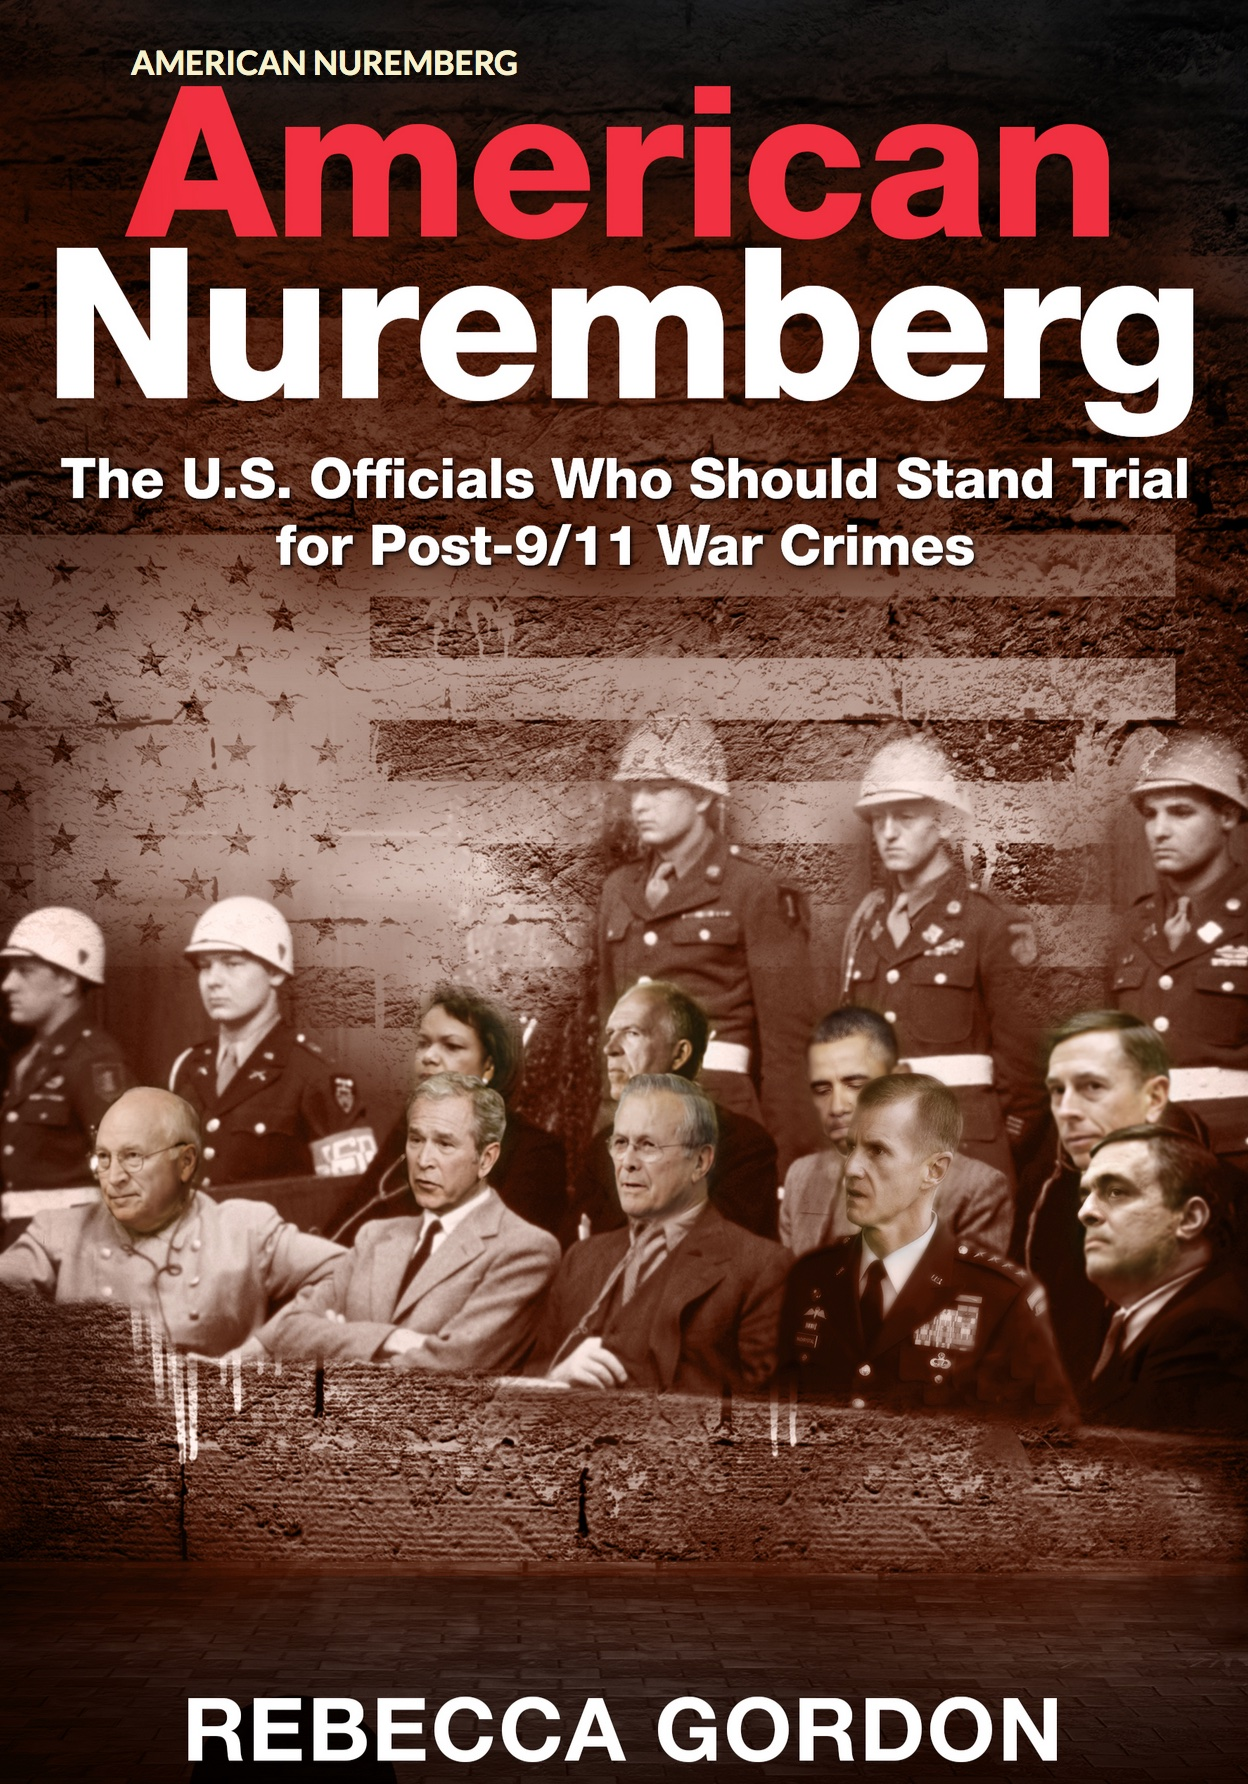 American Nuremberg Trial Needed